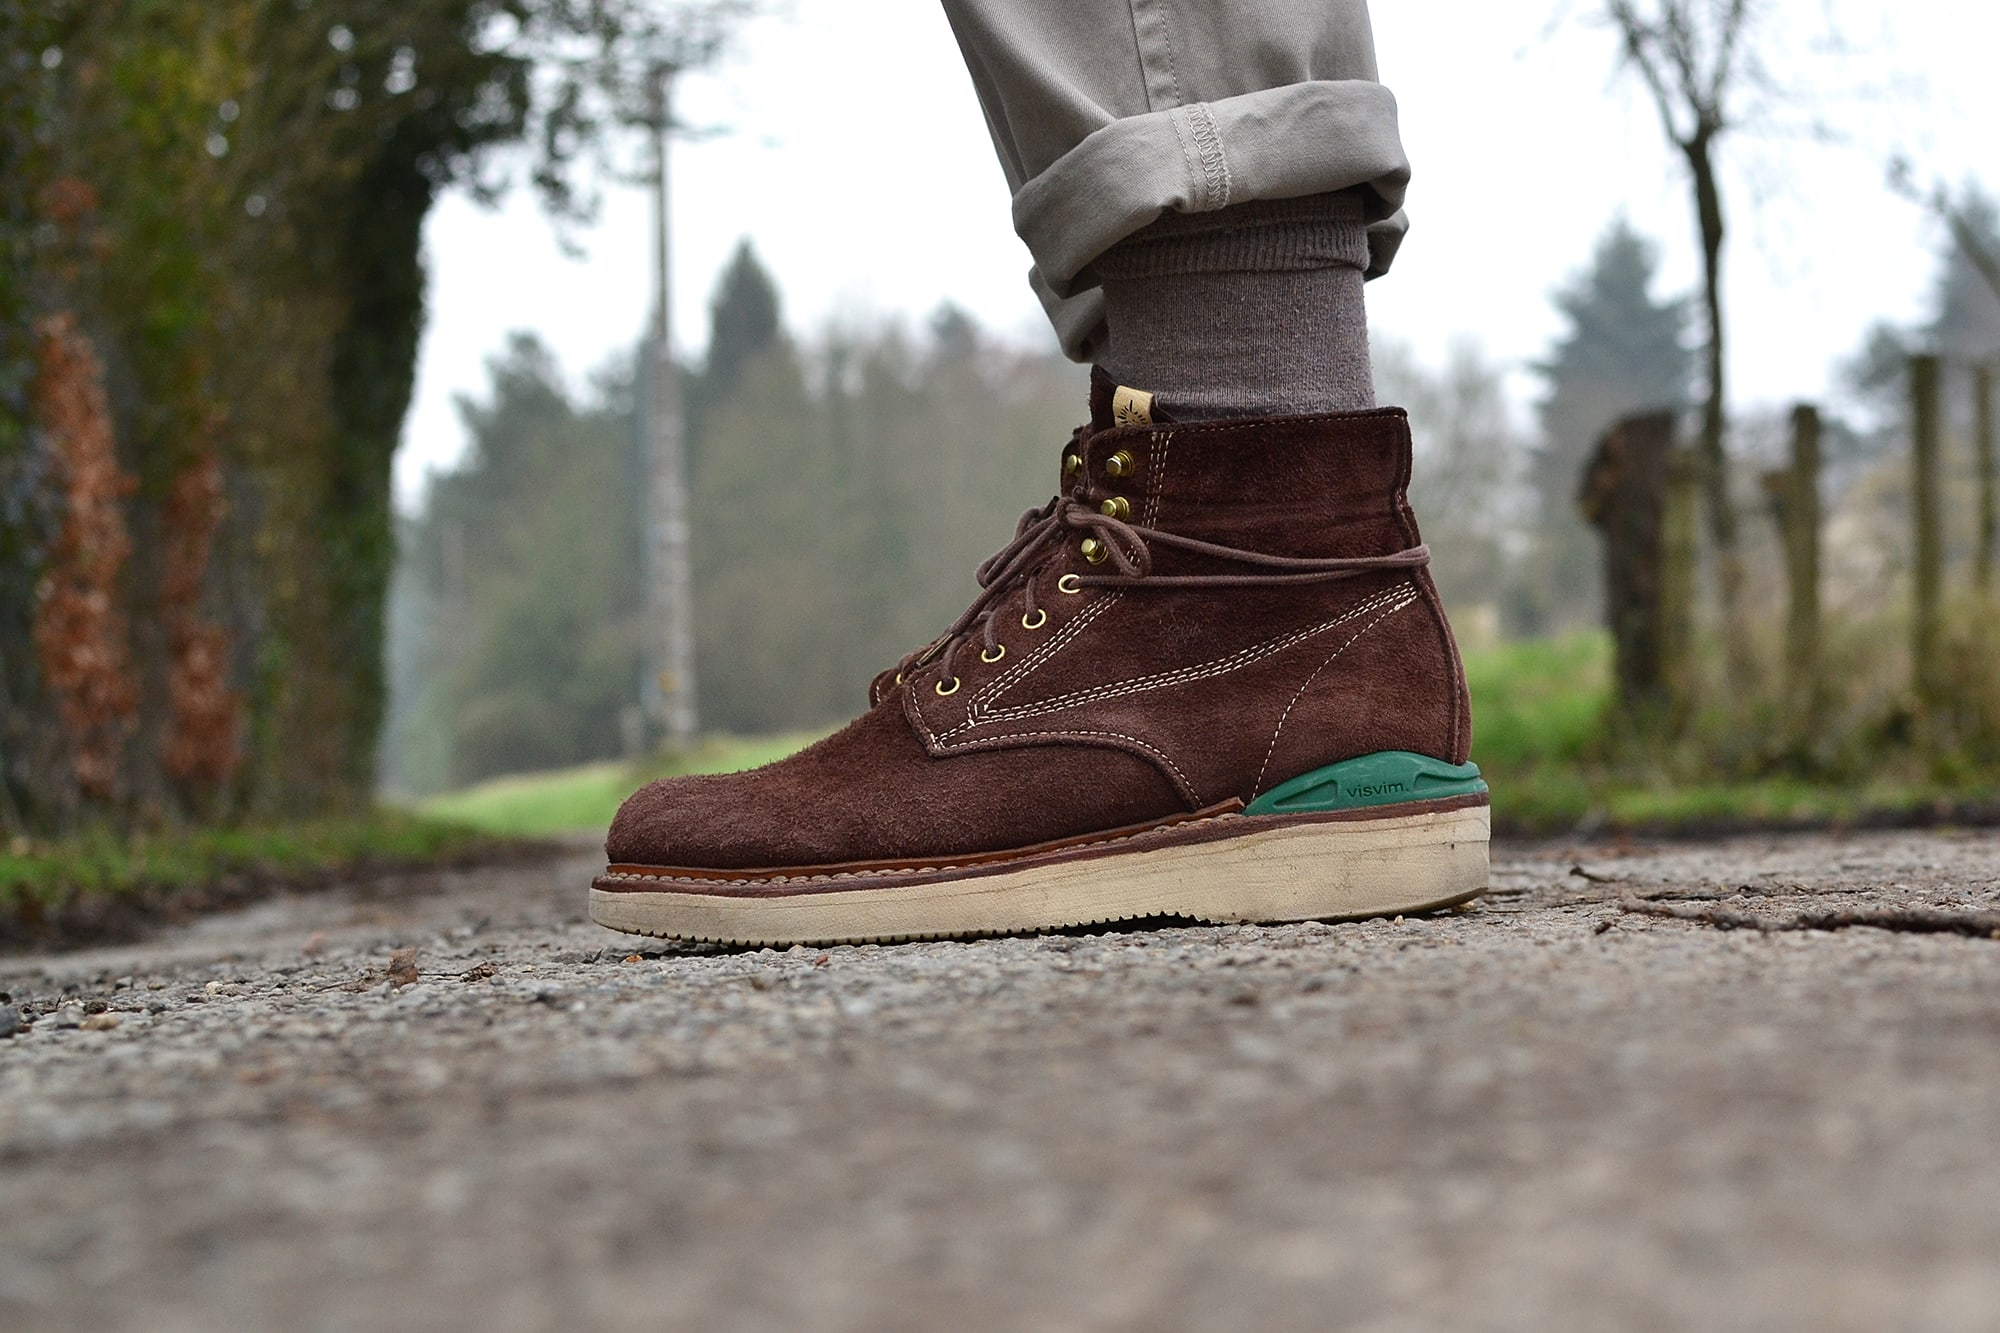 How to wear work boots Visvim Virgil brown chocolate elk boots